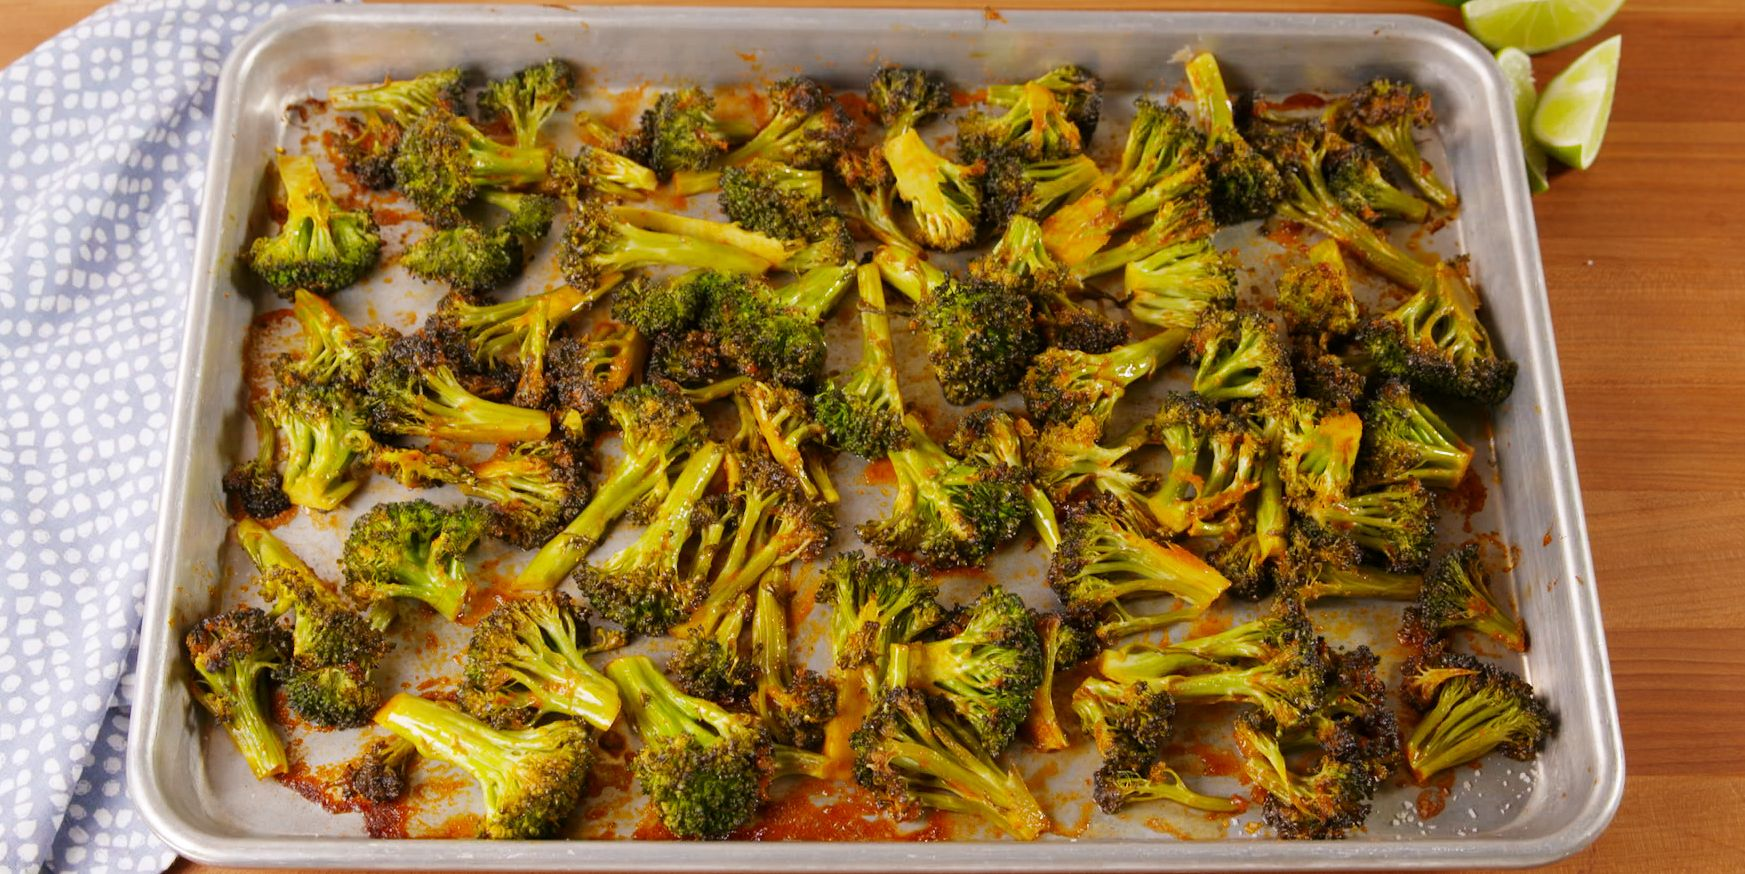 13 Ways To Roast Broccoli You Haven't Tried Before